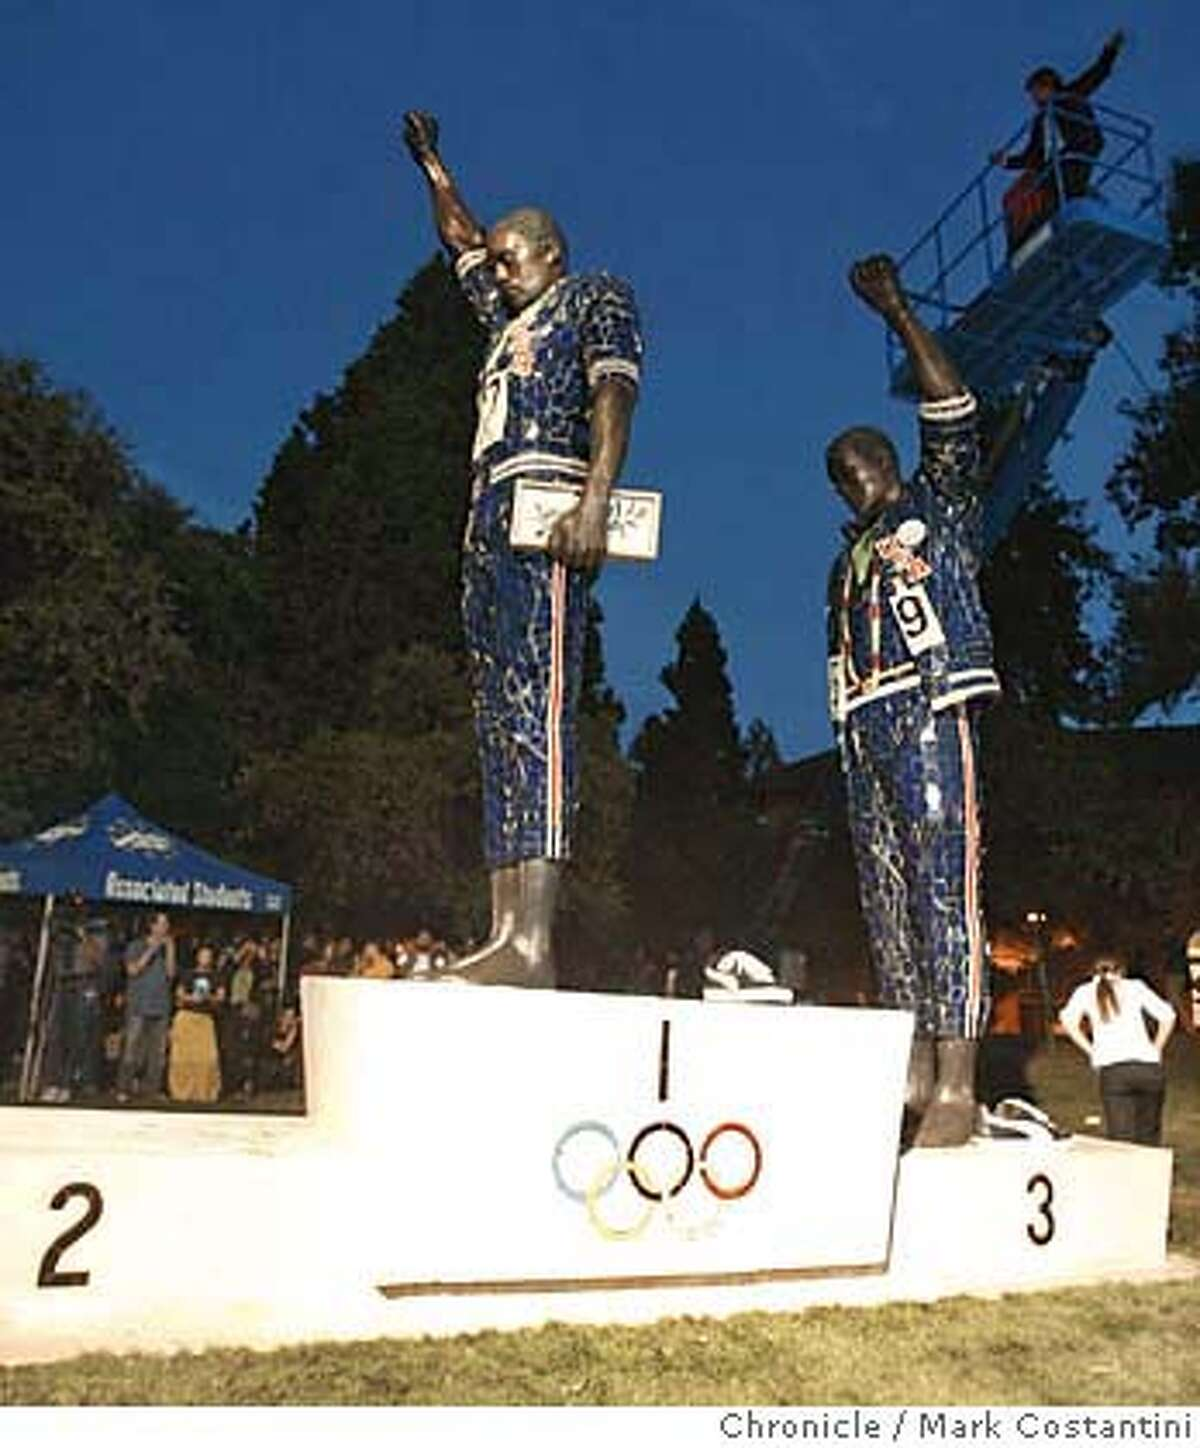 The statue. San Jose State unveils 24-foot statue of Tommie Smith and John Carlos' protest on the medal stand at the 1968 Mexico City Olympics Smith, Carlos and Peter Norman, who was also on the medal stand, will be there. We'd like photos of them and of the statue. PHOTO: MARK COSTANTINI/S.F. CHRONICLE